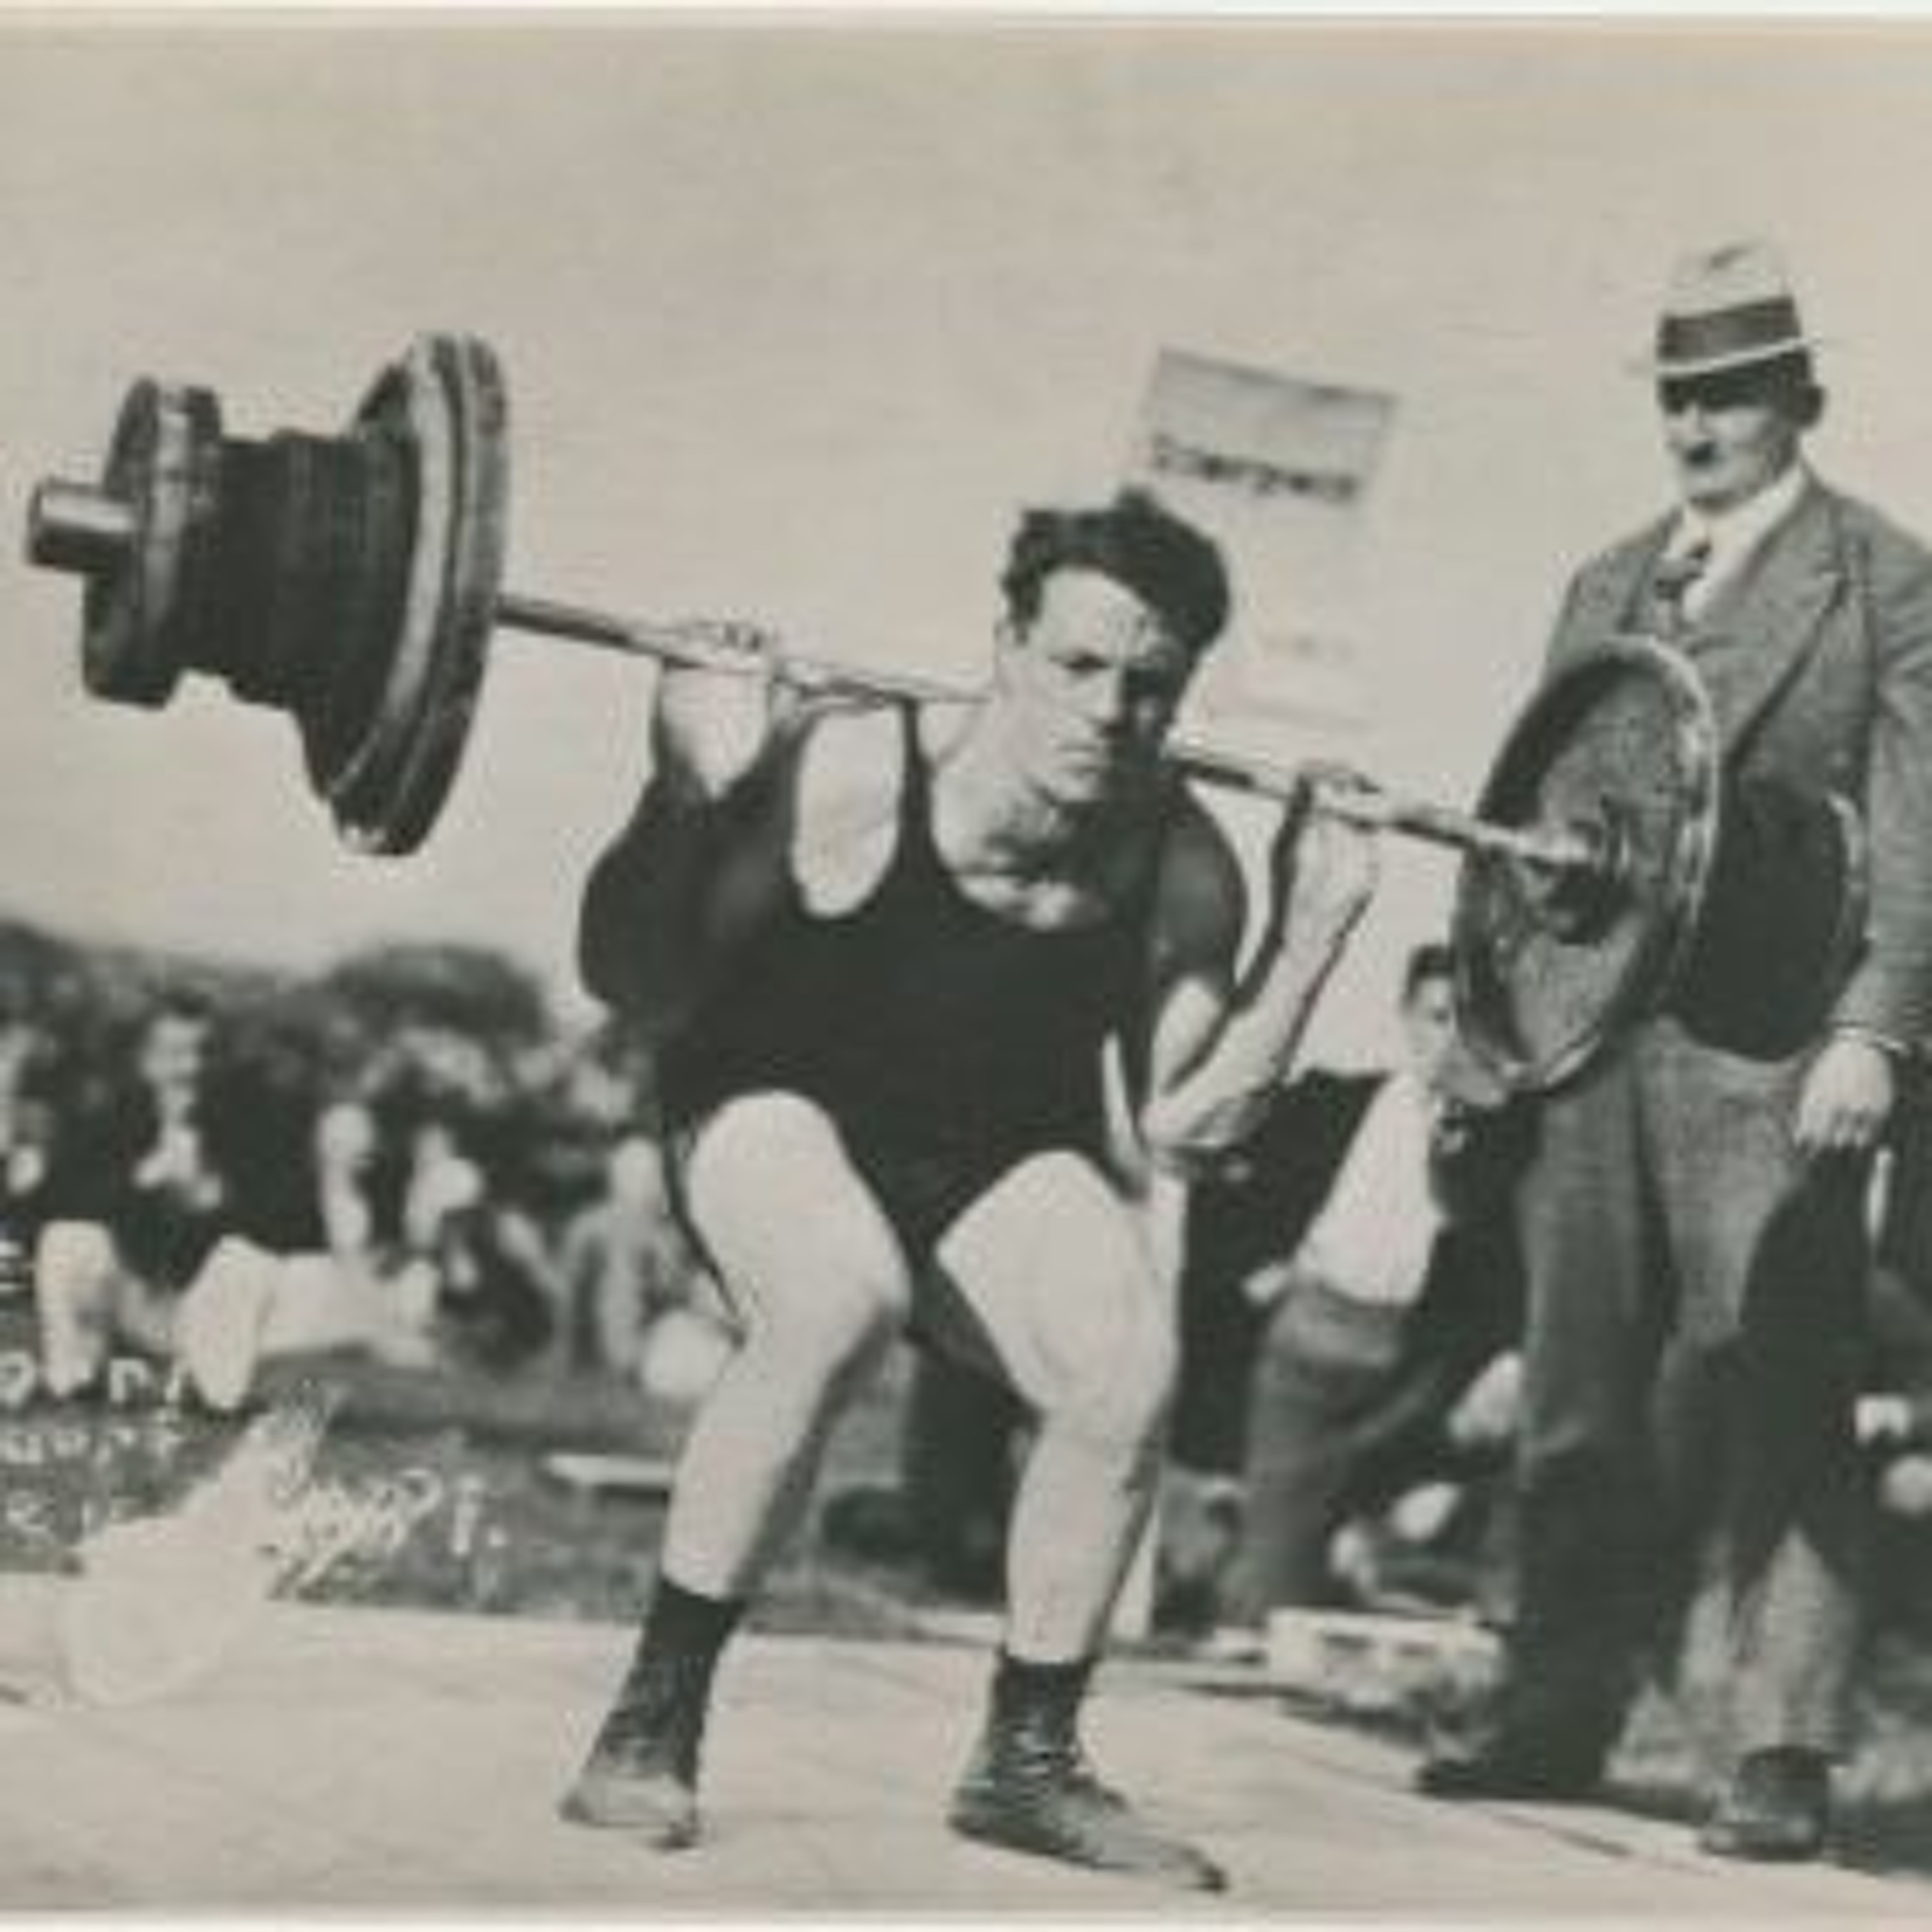 Episode 147 - Evolution of squat, bench press and deadlift technique with Dr. Conor Heffernan